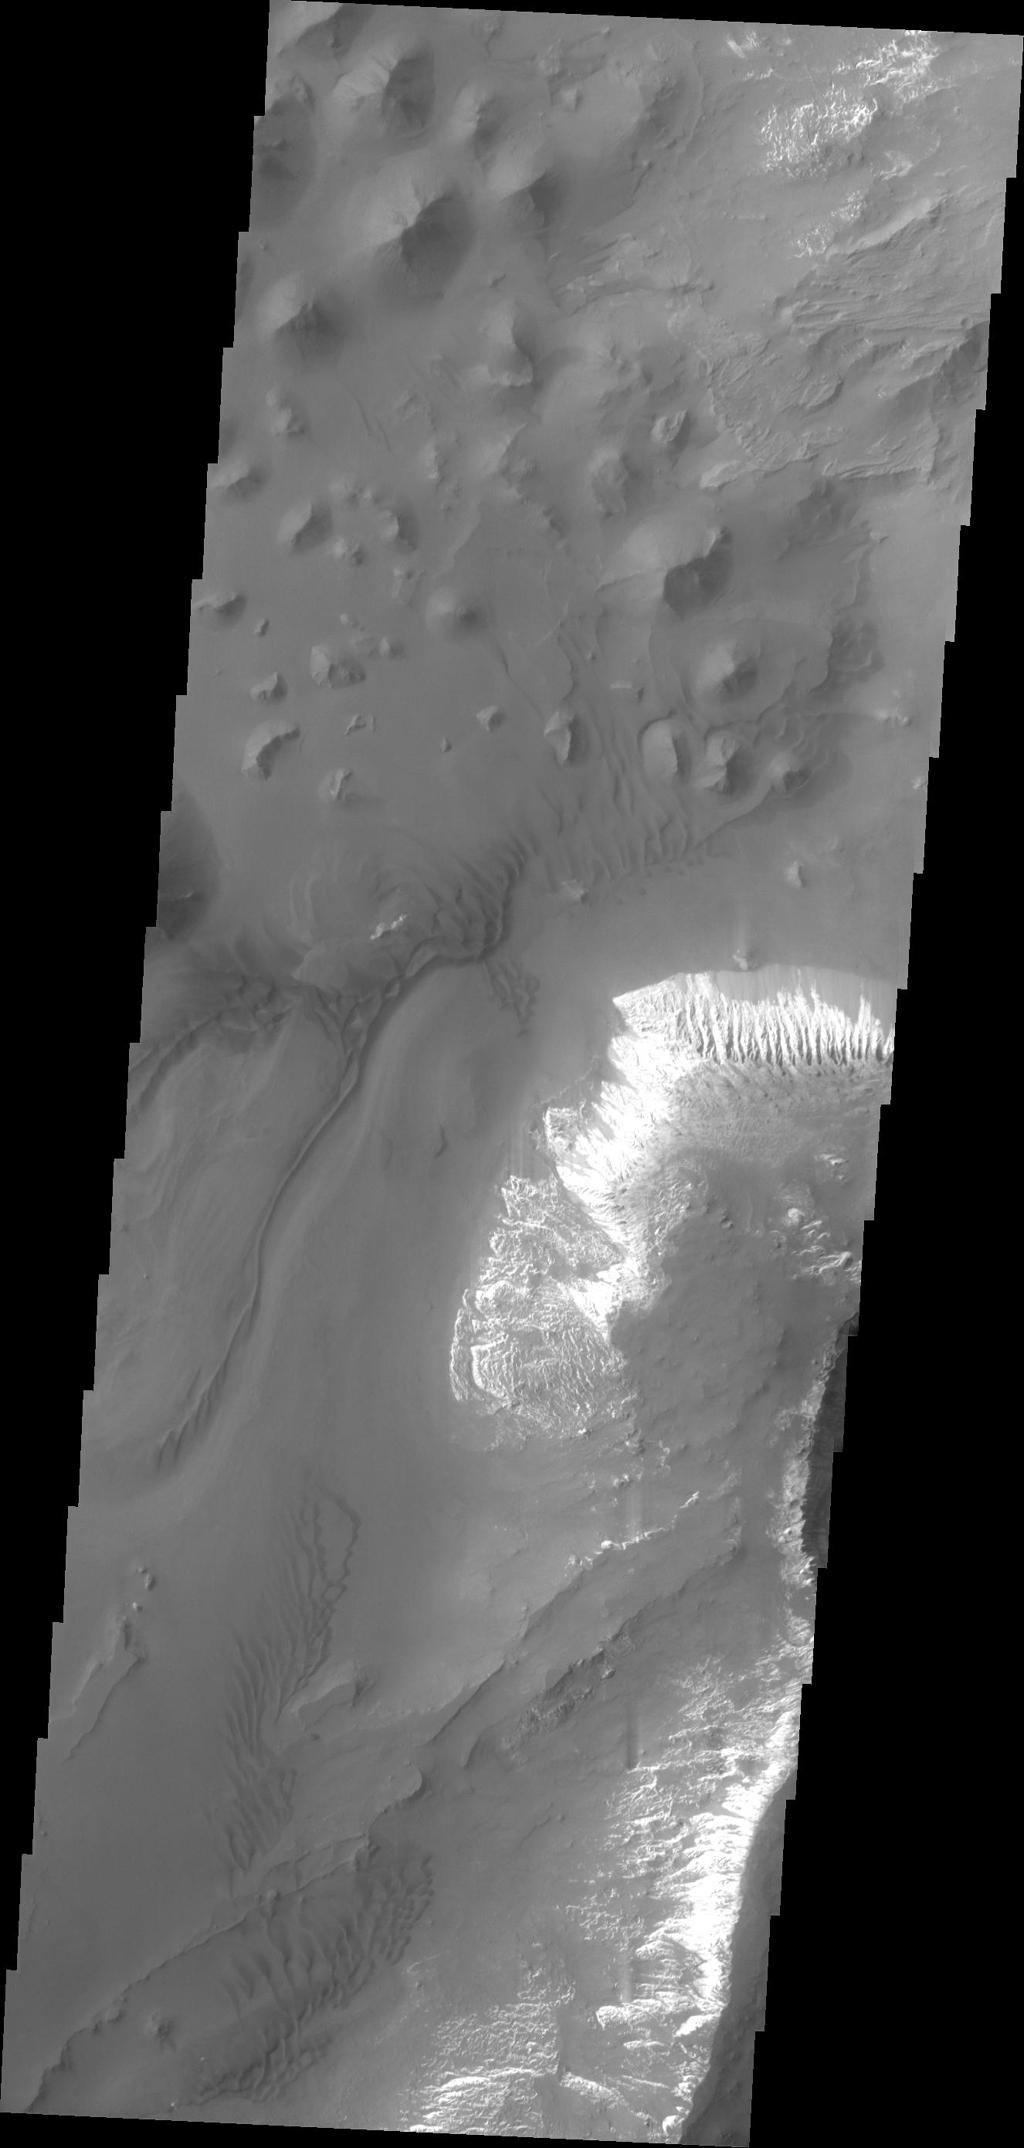 Taken by NASA's 2001 Mars Odyssey spacecraft, this image shows a small portion of the floor of Capri Chasma. Bright layered deposits and dunes are visible.